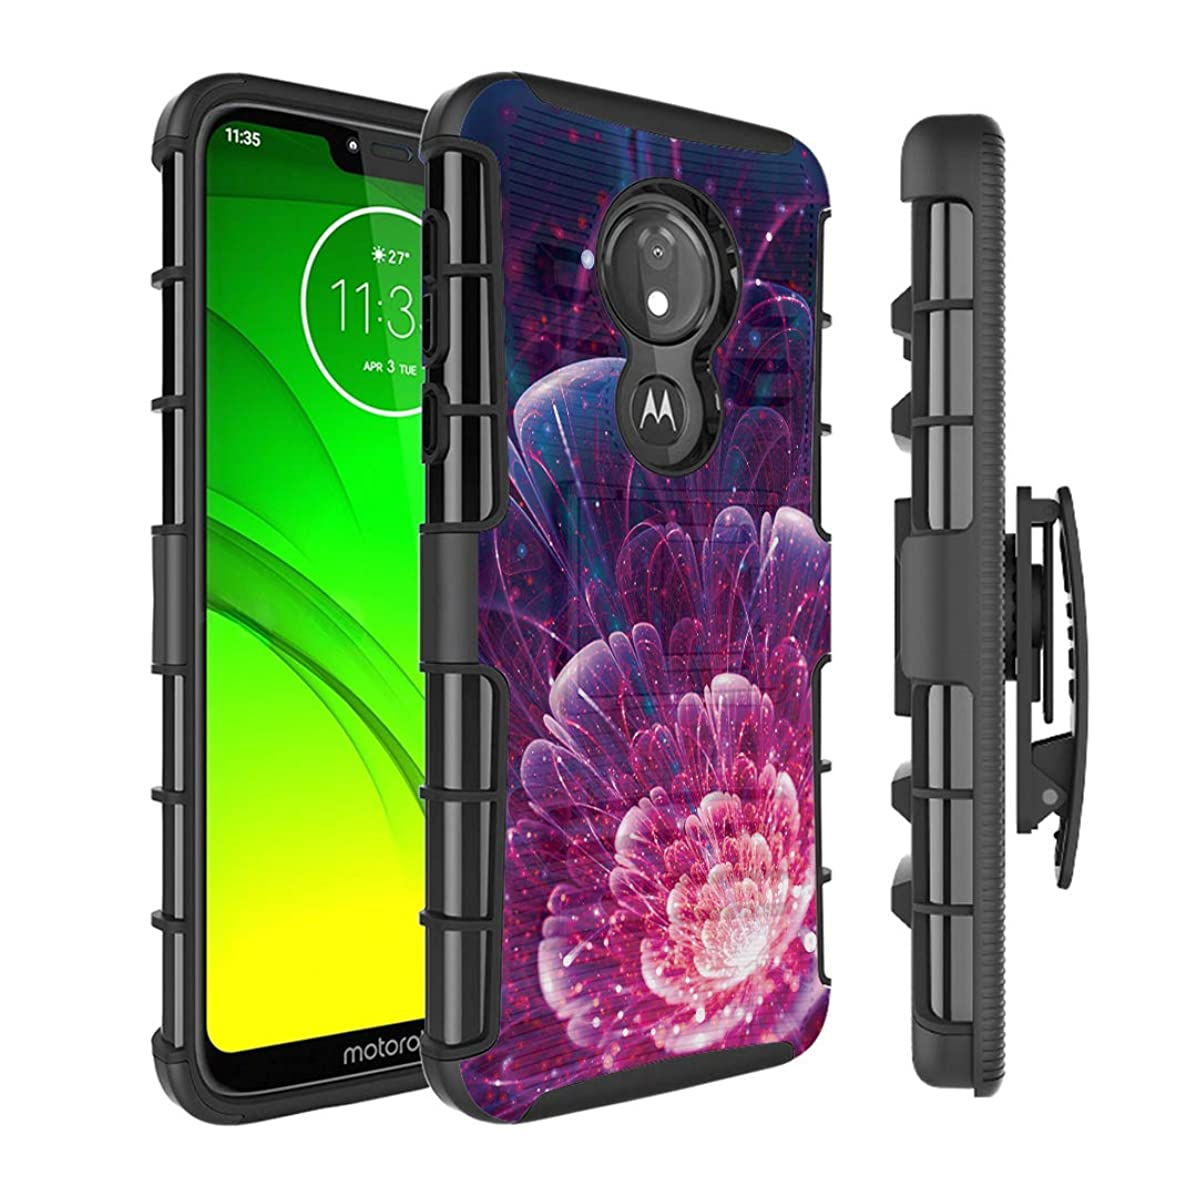 Moriko Case Compatible with Moto G7 Power, Moto G7 Supra [Kickstand Holster Combo Heavy Duty Protection Case Black] for Motorola Moto G7 Power - (Space Floral)